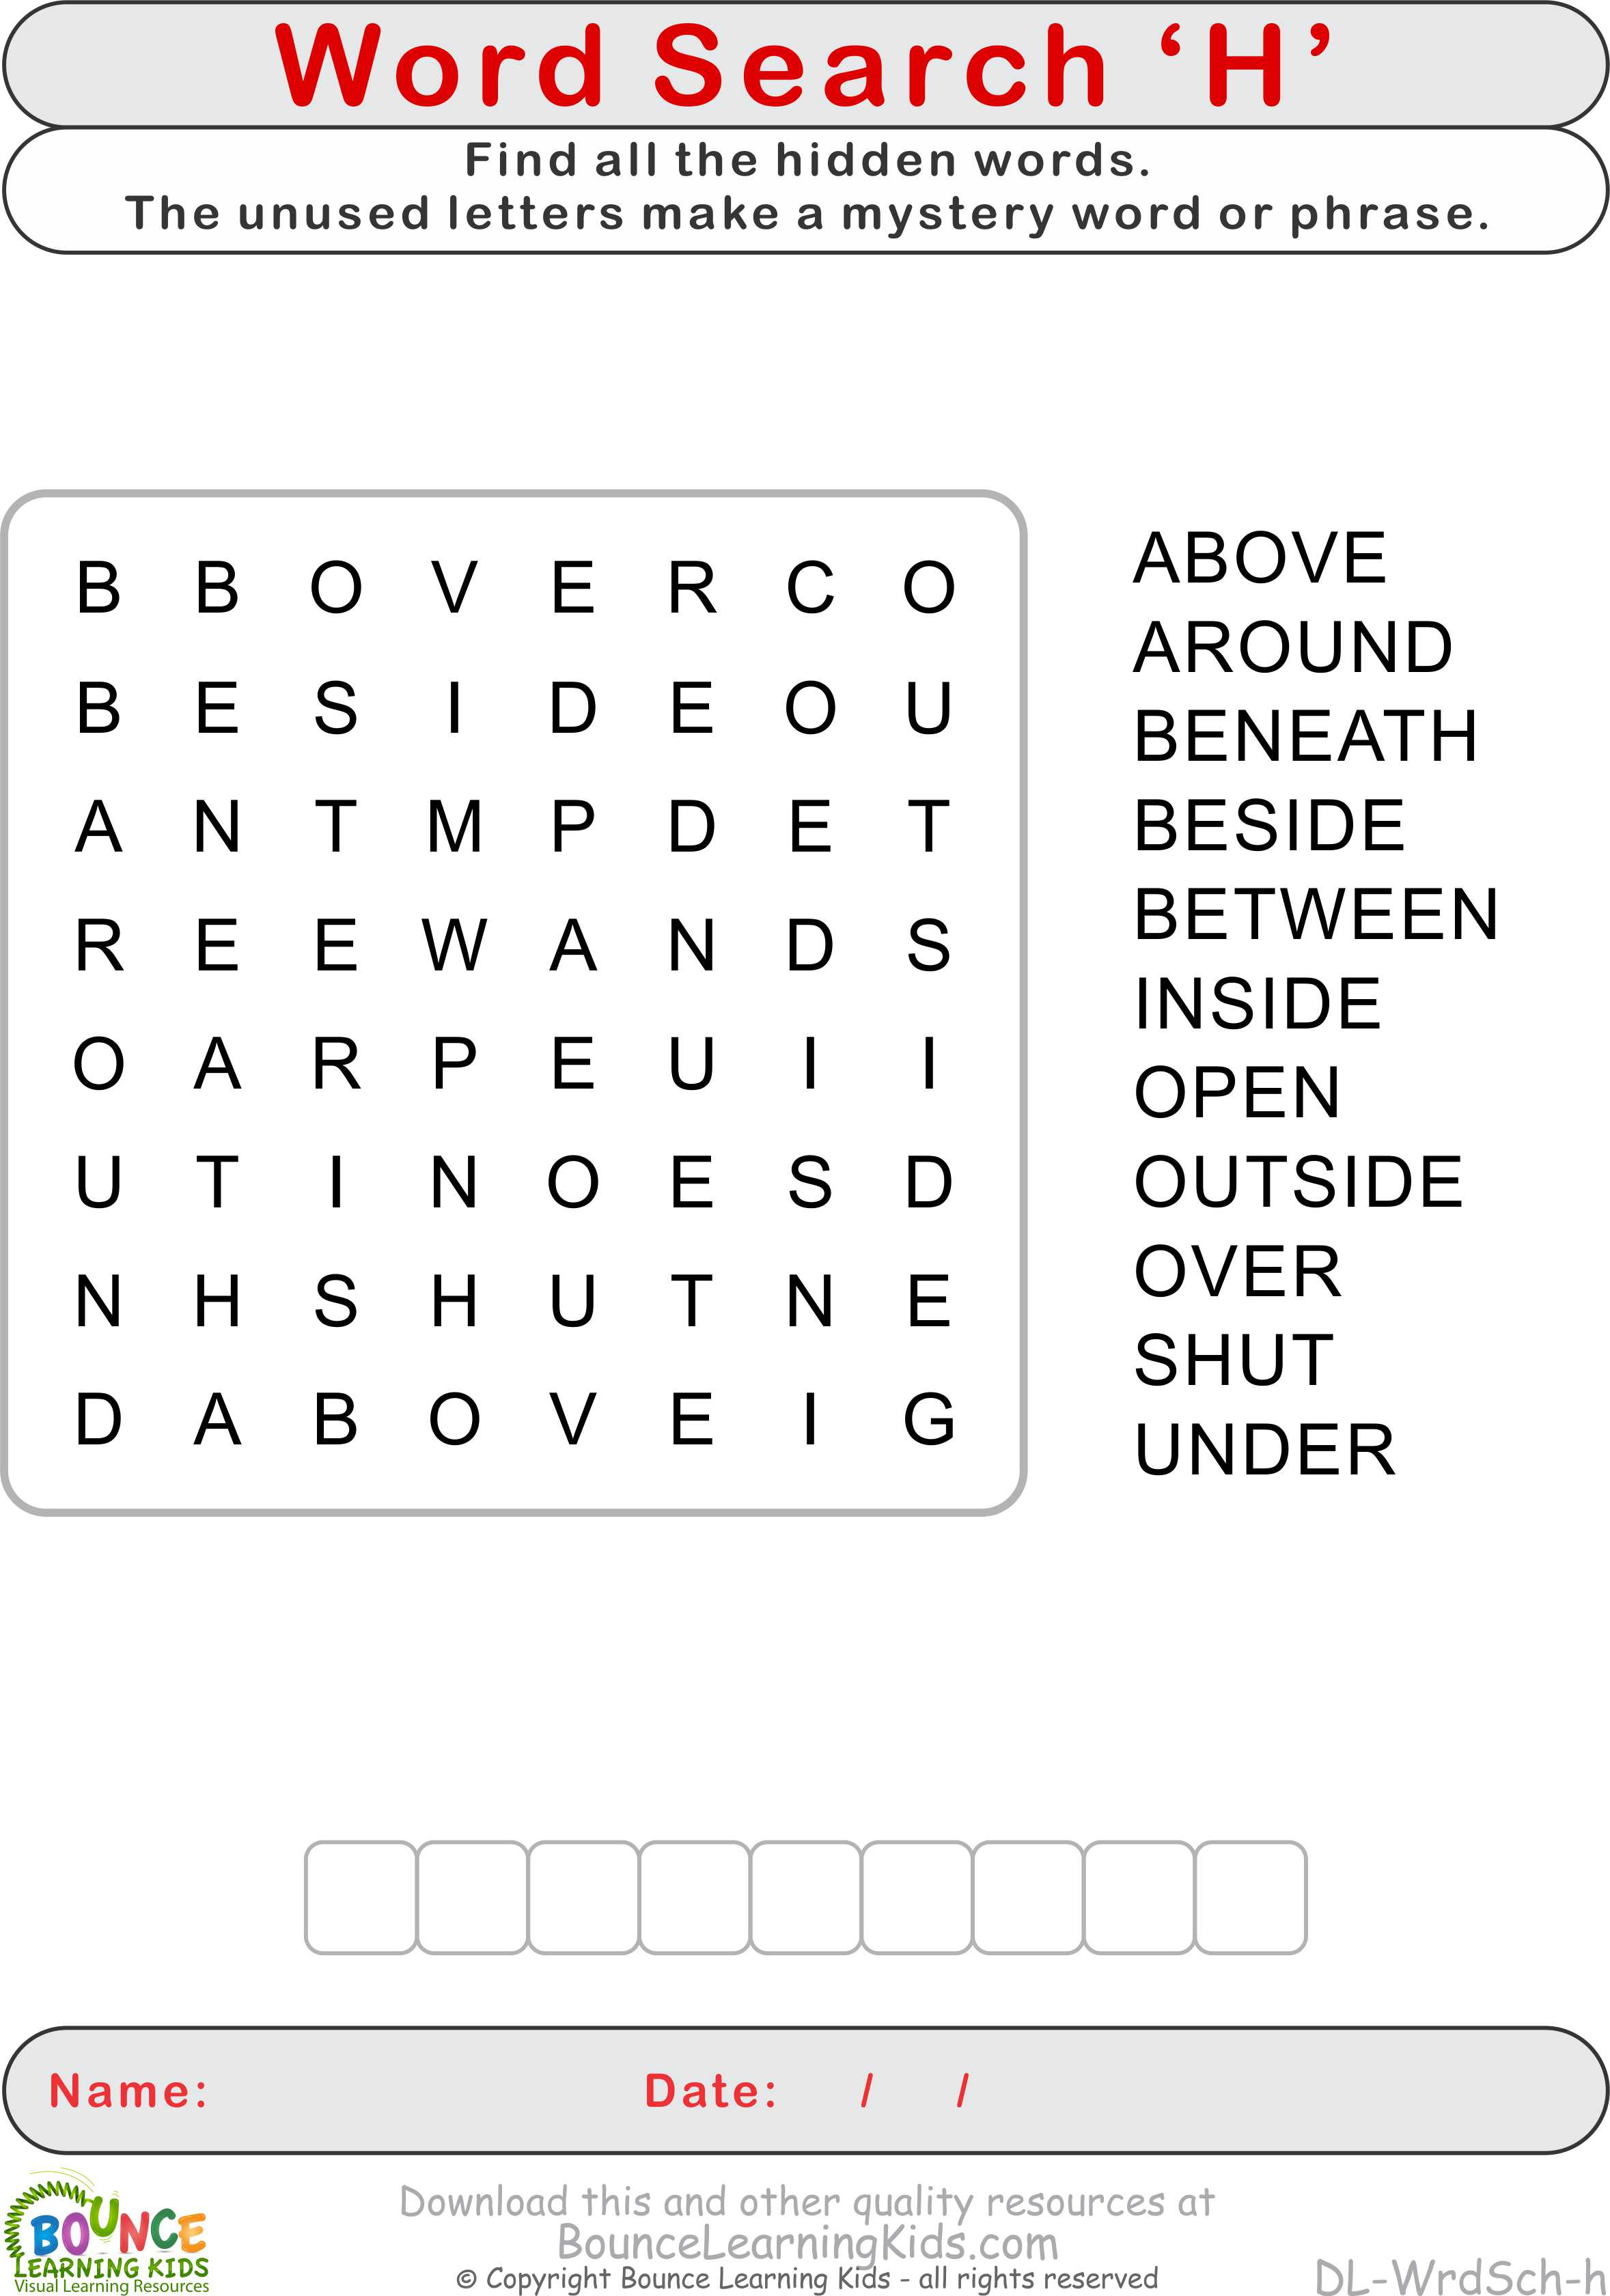 Wordsearch H